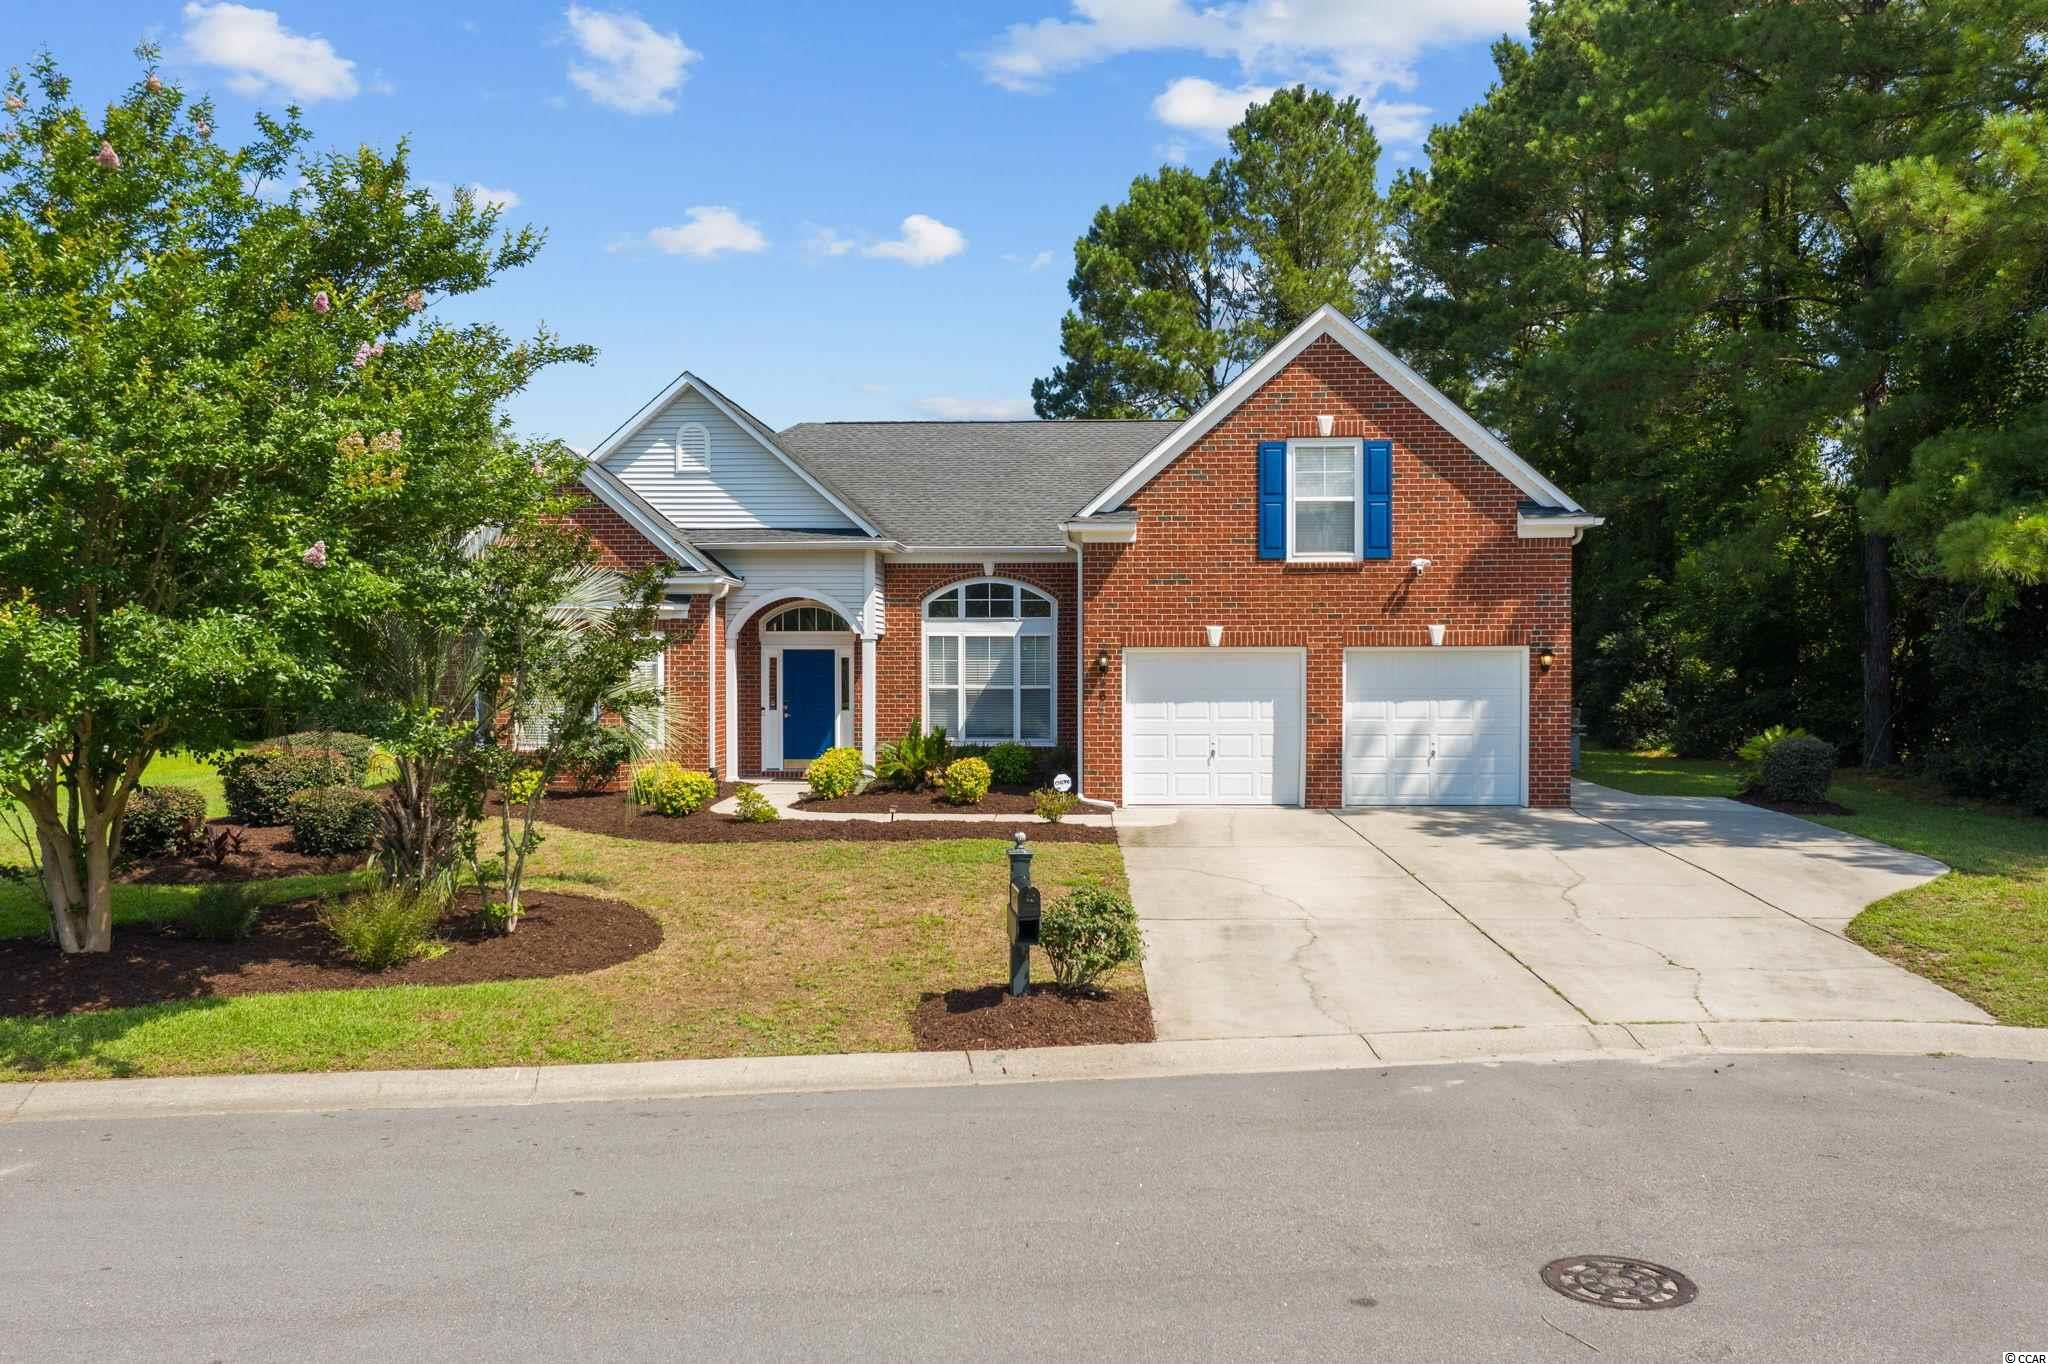 ***HUGE PRICE IMPROVEMENT!** Here's your opportunity to live in the much desired Long Bridge Subdivision of Barefoot Landing of North Myrtle Beach!  This floor plan has 2 master suites with private bathrooms, an open floor plan, extended garage and bonus room with bathroom over the garage.  The front room has French doors and is set up for an office, but can easily be an additional bedroom, Carolina Room, Bay windows, 2 flat screen TV's convey, and there's a Ring system in place - all you need to do is hook them up. The HVAC system was replaced in 2020, new roof in 2014.   This home sits on a very private large lot in a cul-de-sac w/sprinkler system.  Call today to come enjoy the beautiful Barefoot life! *1 of the owners is a SC licensed referral agent.